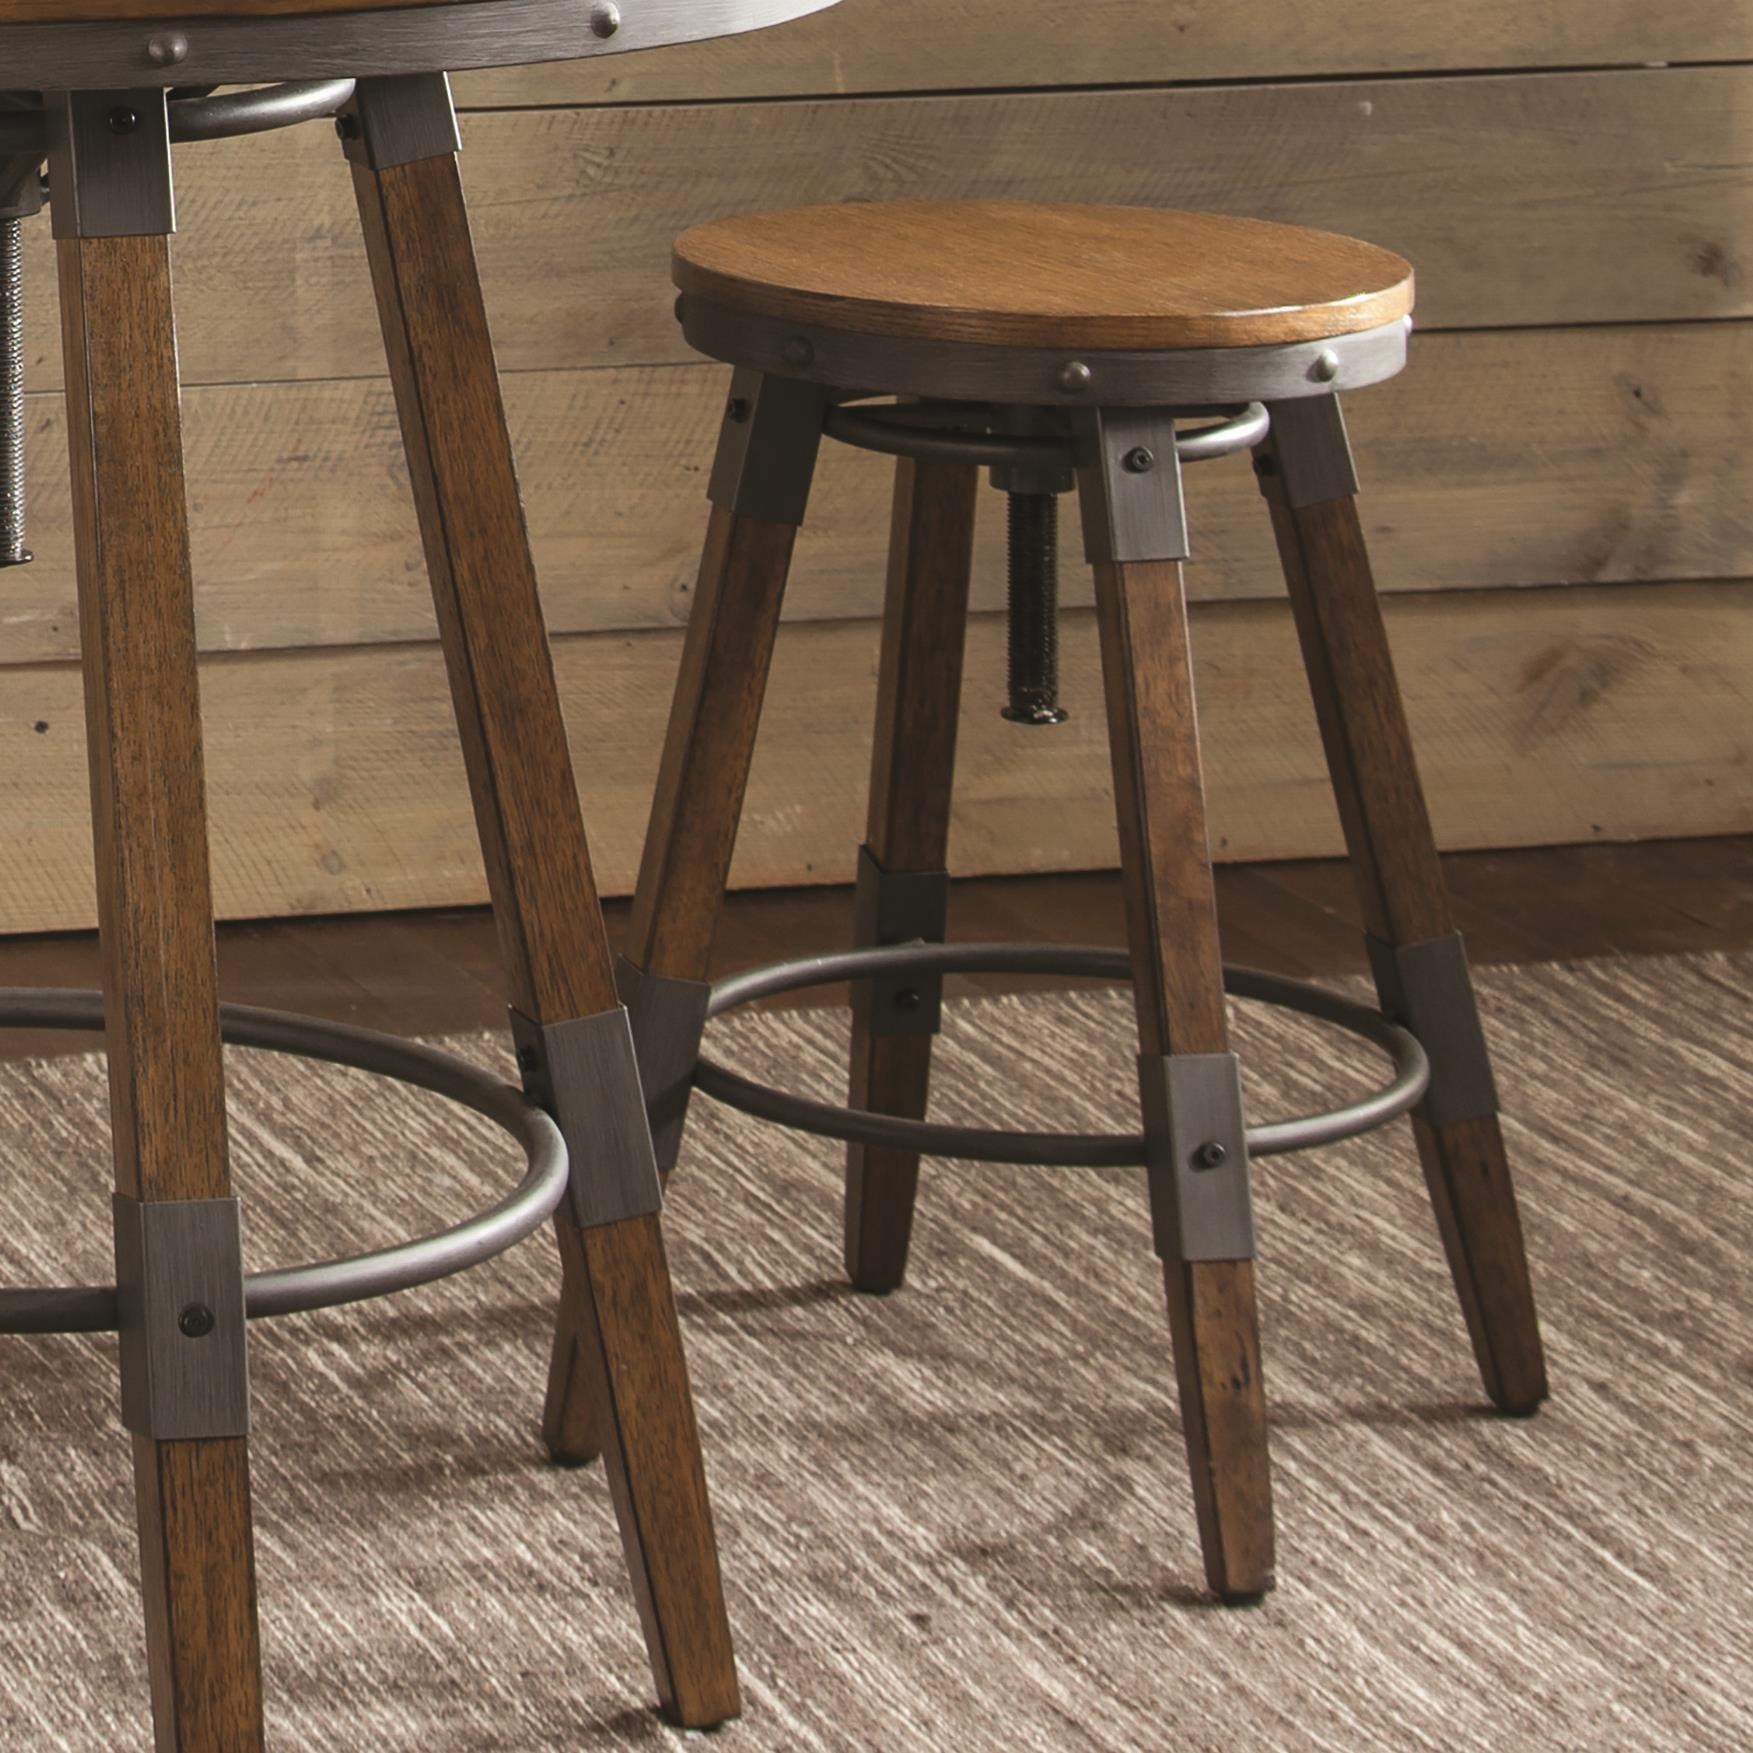 Hornell Rustic 3 Piece Set Adjustable To Counter Or Bar